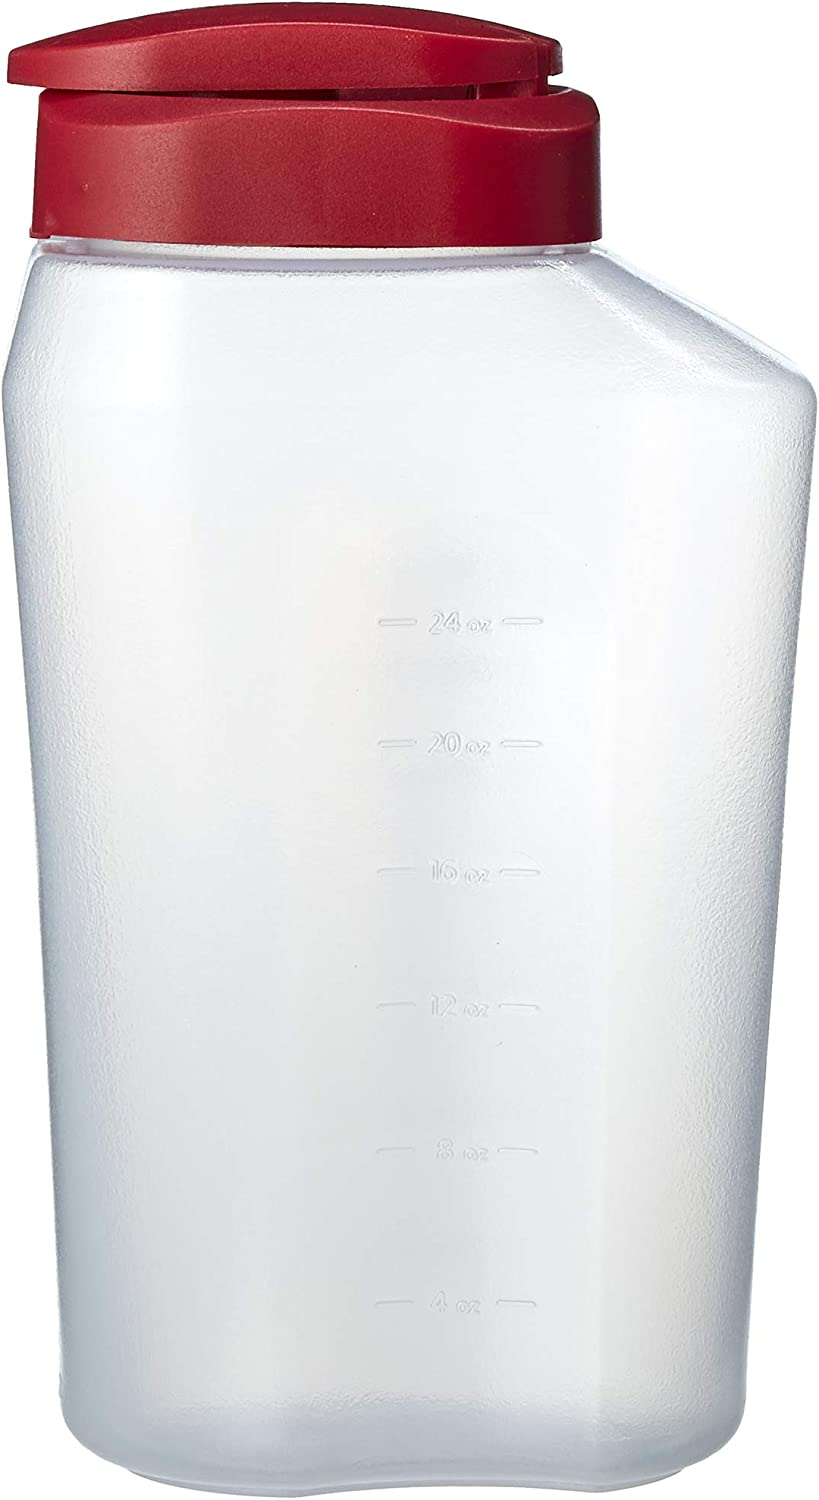 Goodcook 1 quart mixing easy pour bottle with measurments rounded grip, Tighten Square Cap with snap Lock Cap, clear and red